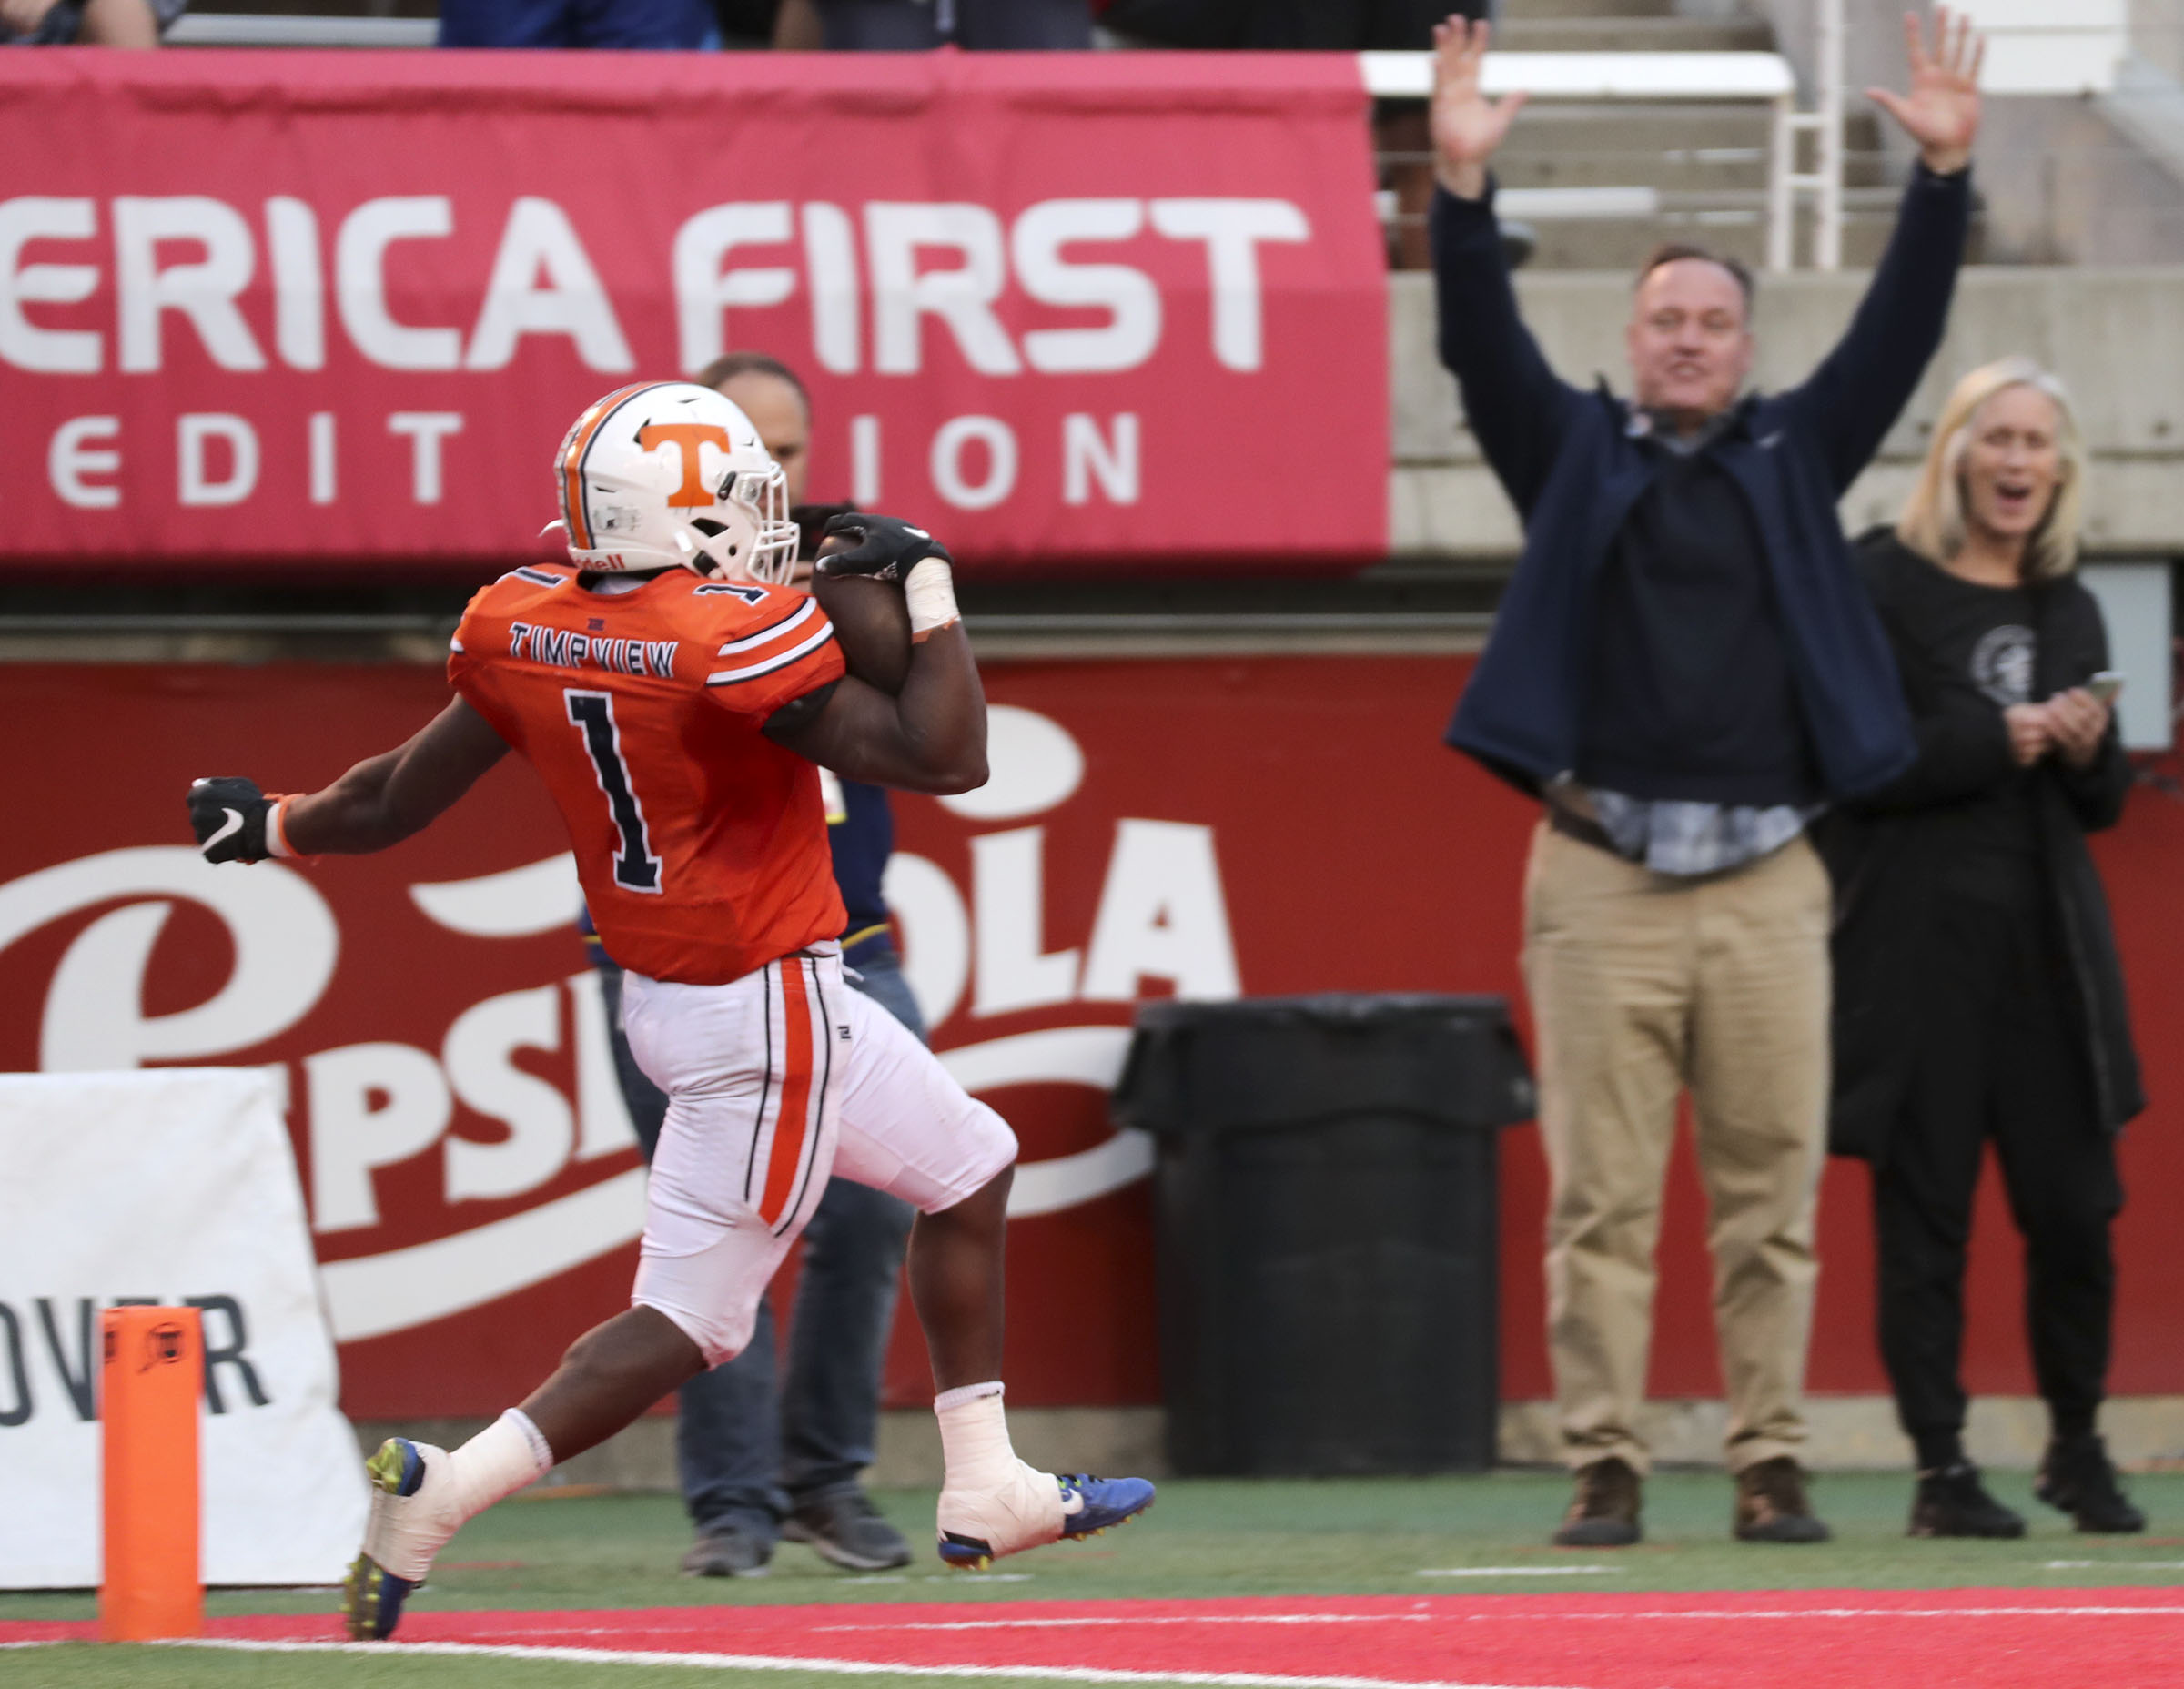 Timpview's Targhee Lambson scores a touchdown during the 5A football semifinal game against Lehi at Rice-Eccles Stadium in Salt Lake City on Thursday, Nov. 14, 2019. Timpview won 35-7.